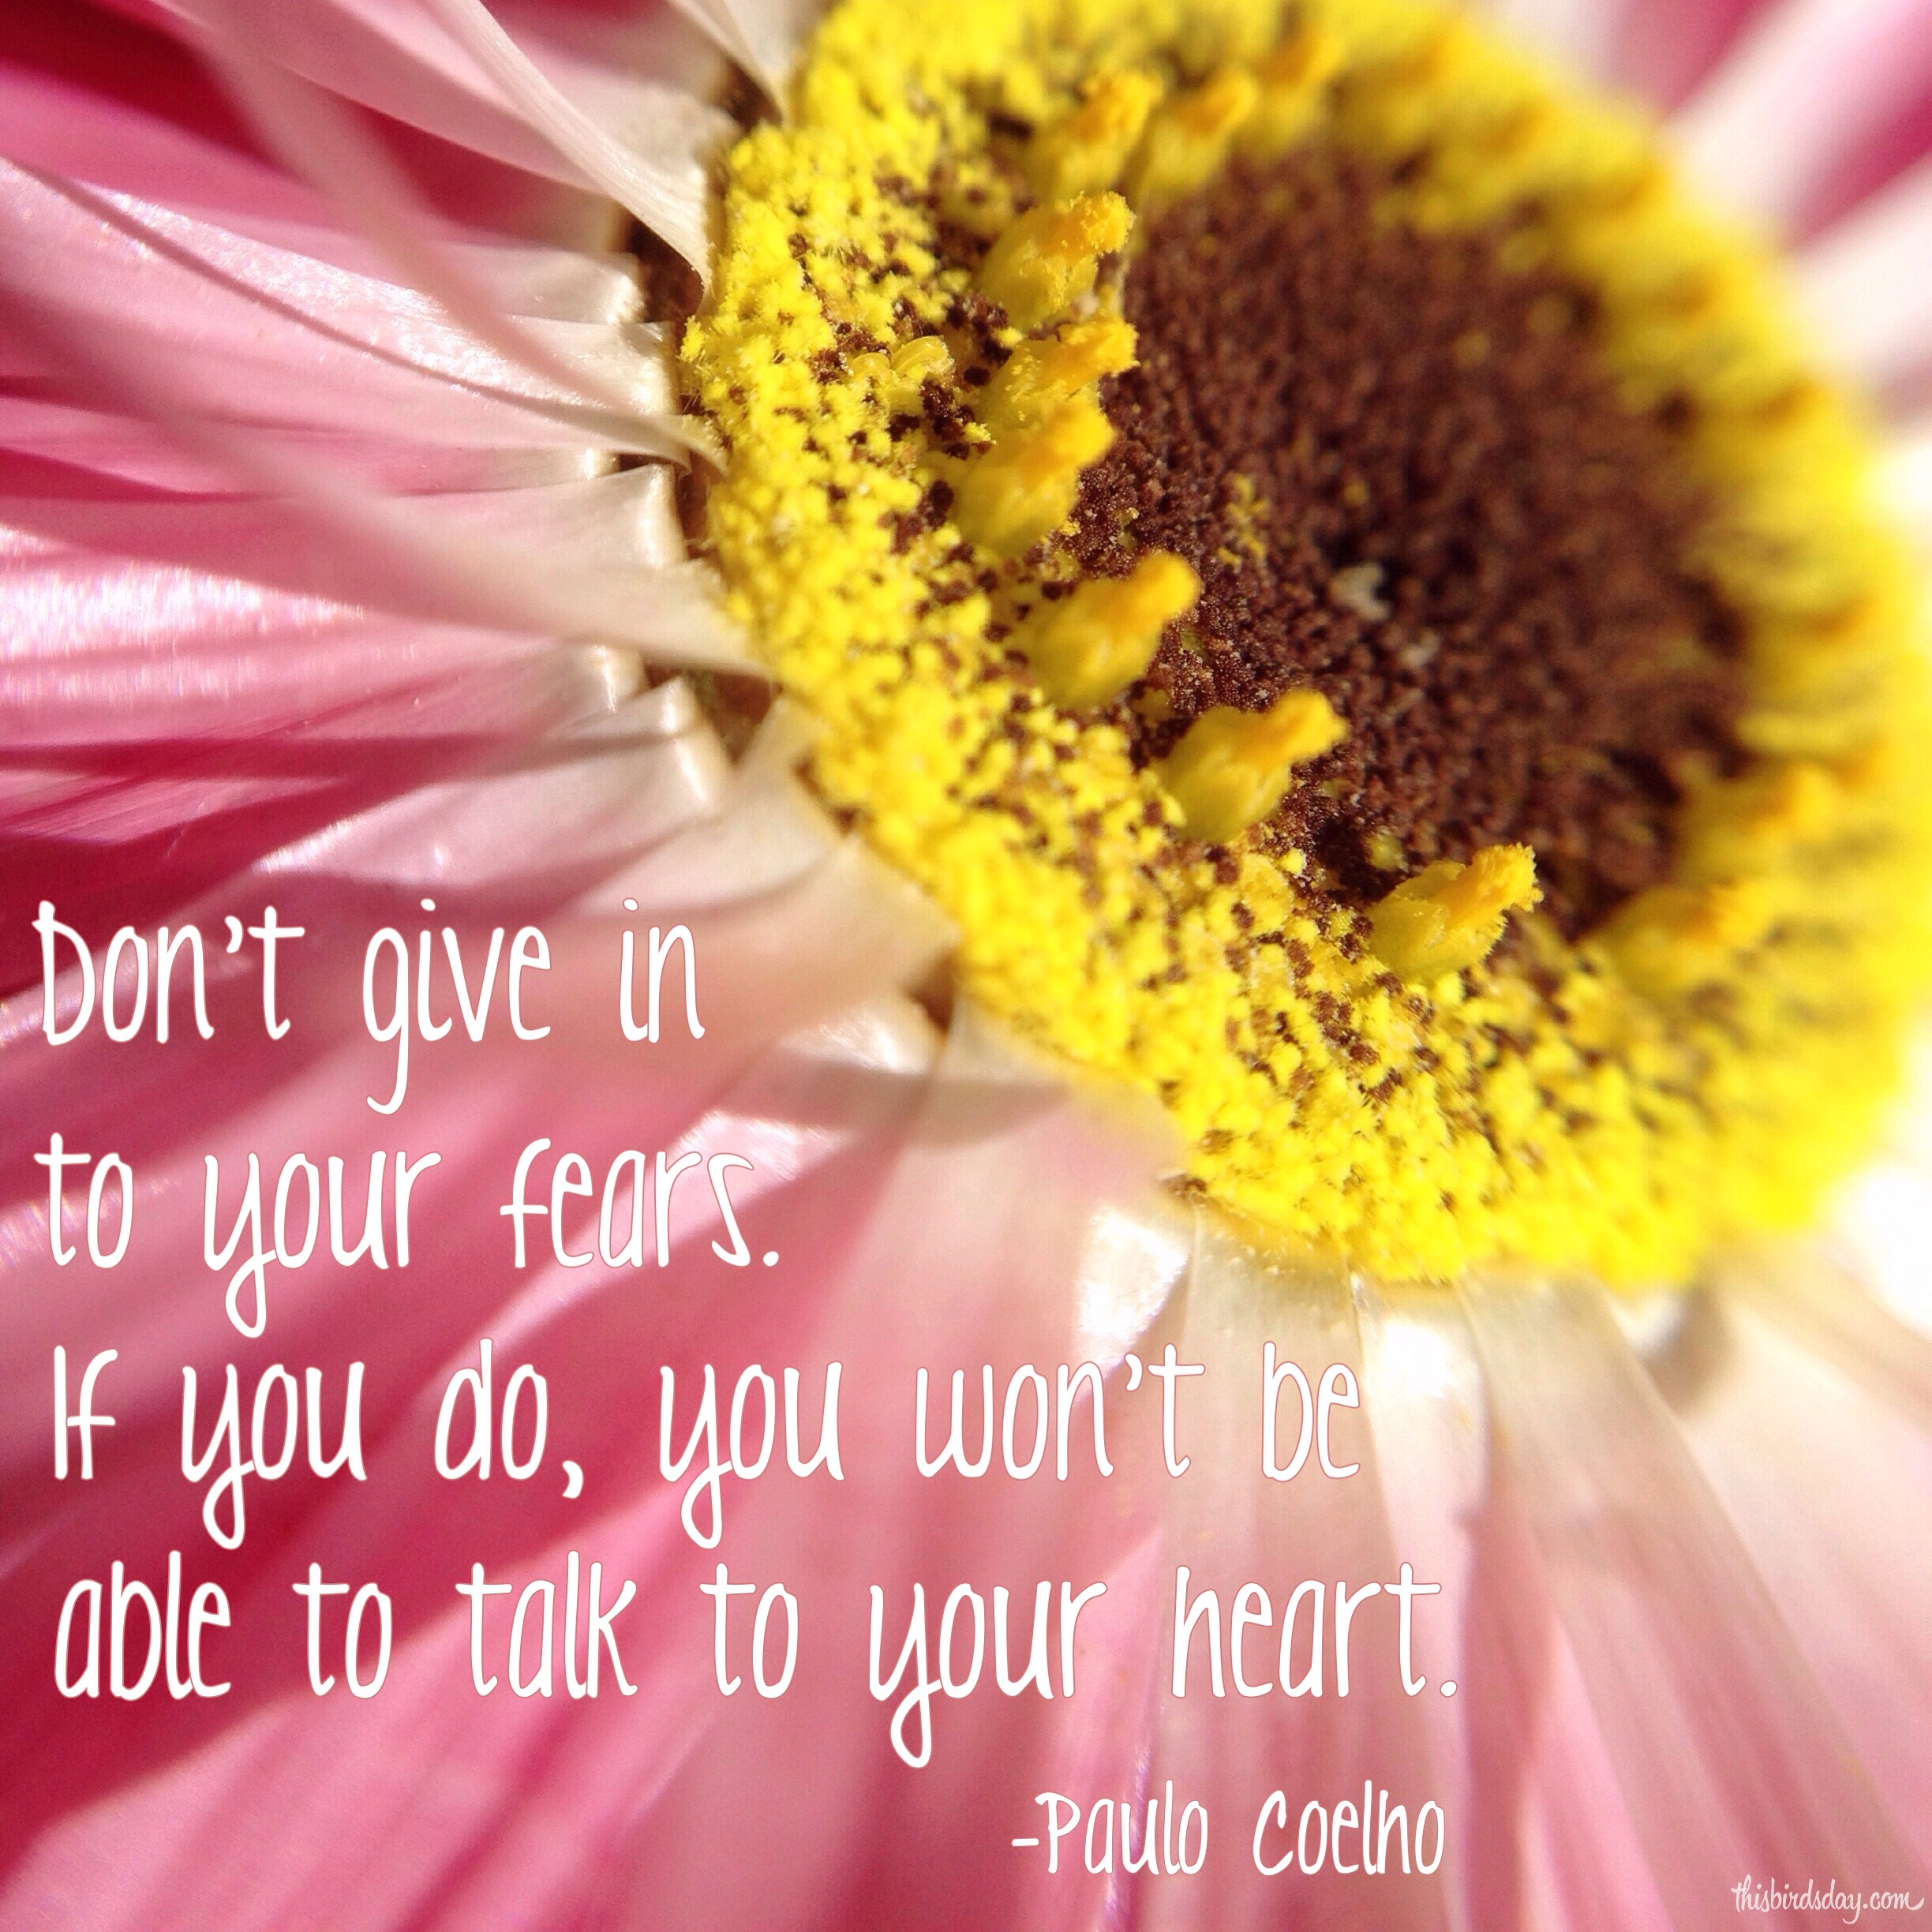 """""""Don't give in to your fears. If you do, you won't be able to talk to your heart."""" Paulo Coelho Photo copyright Sheri Landry"""